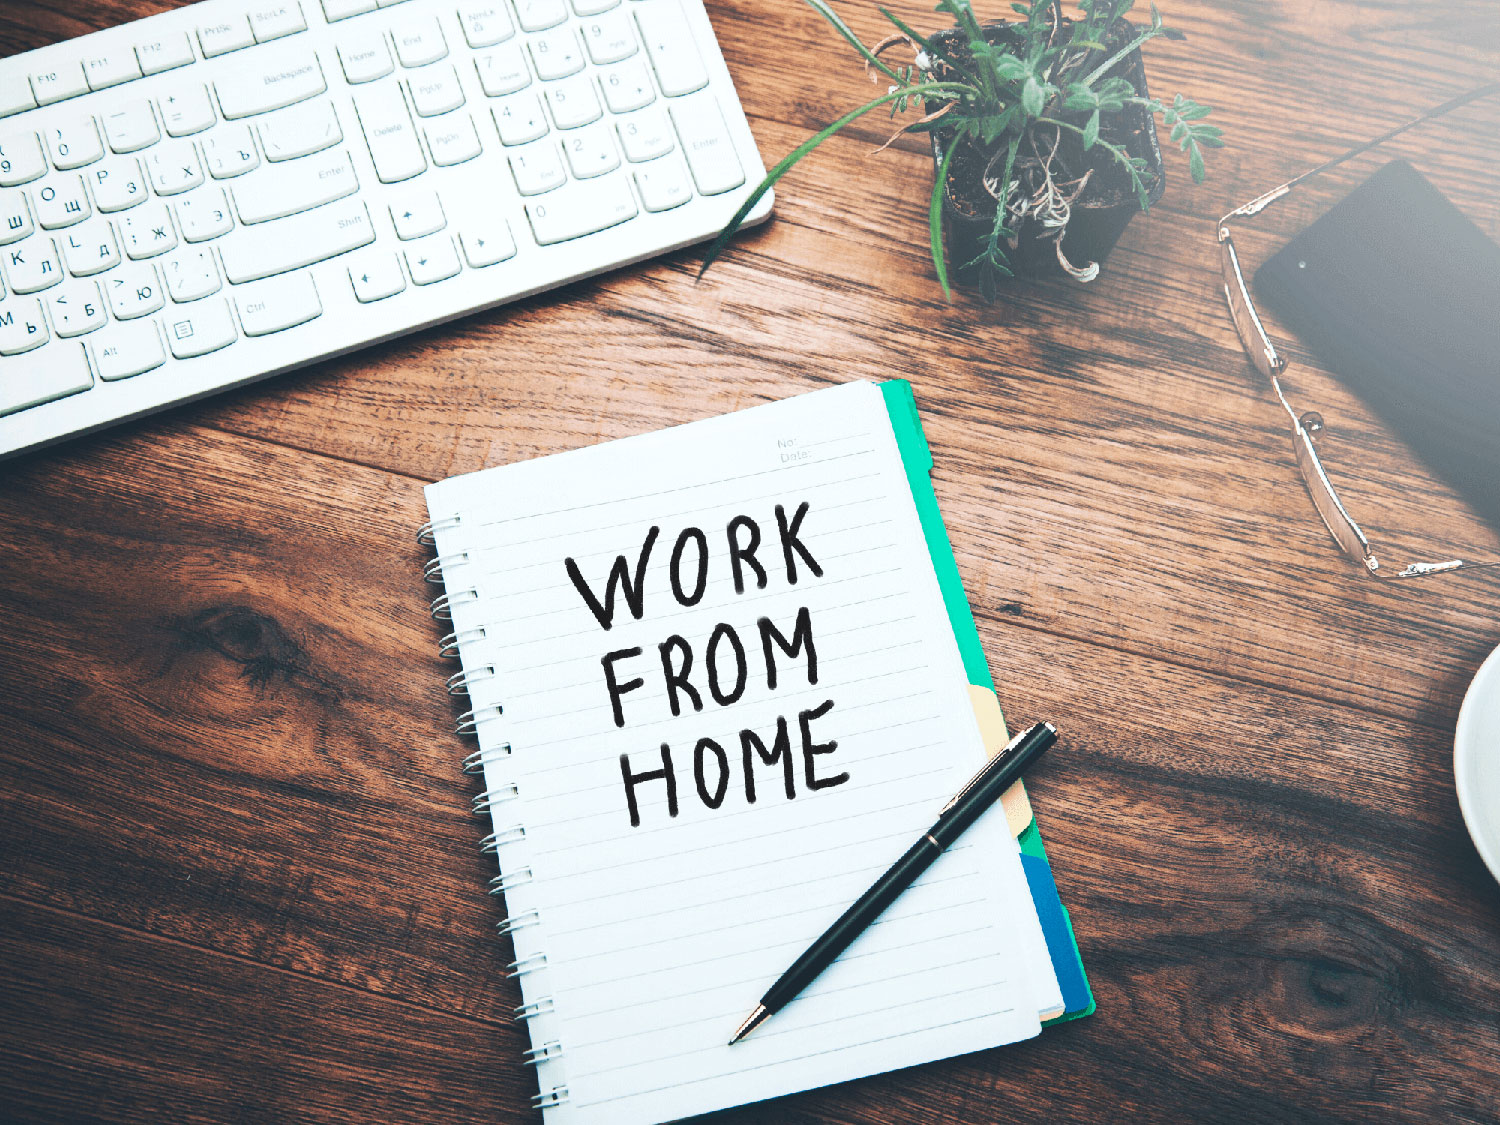 Work from home during the pandemic